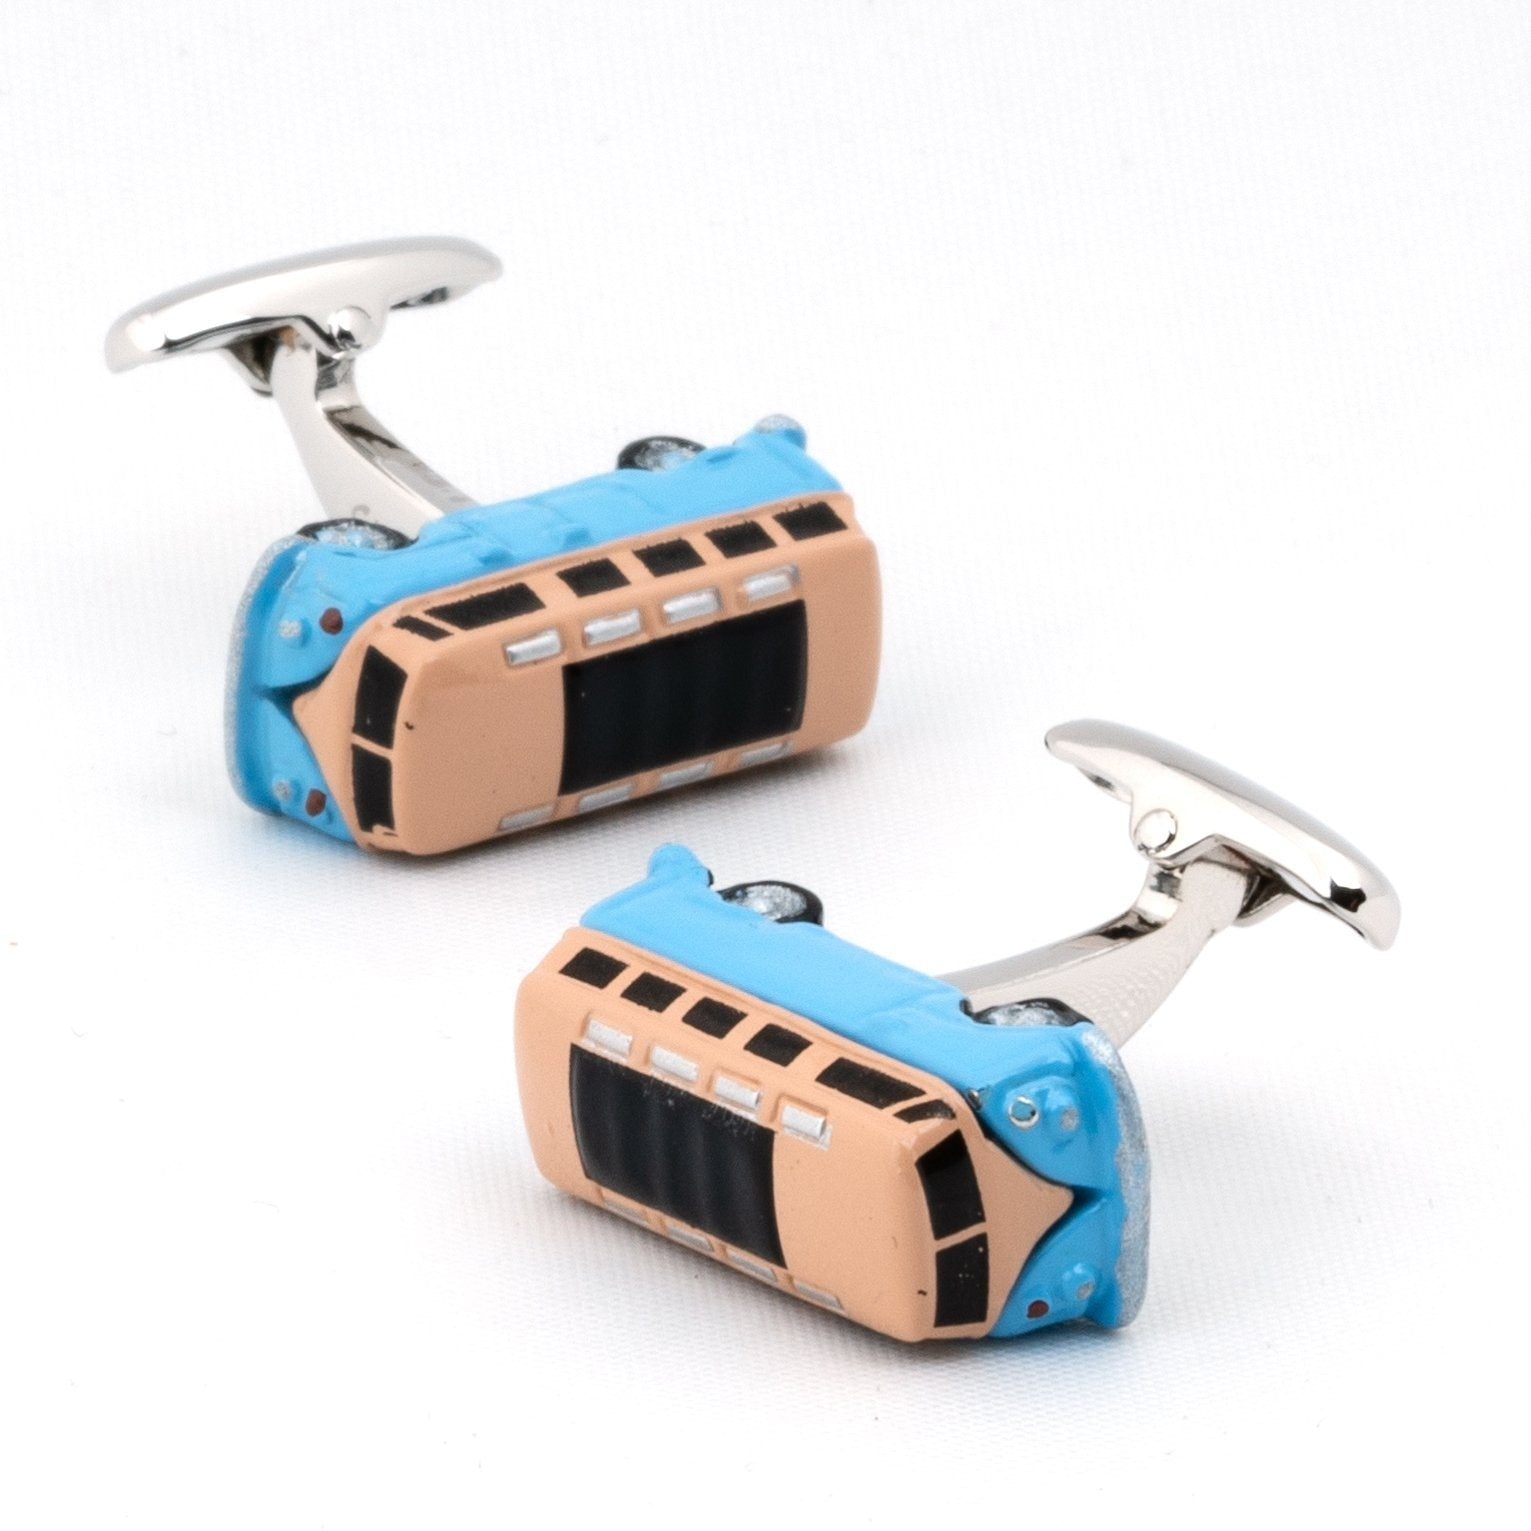 VW Kombi Van Blue Cufflinks Novelty Cufflinks Clinks Australia